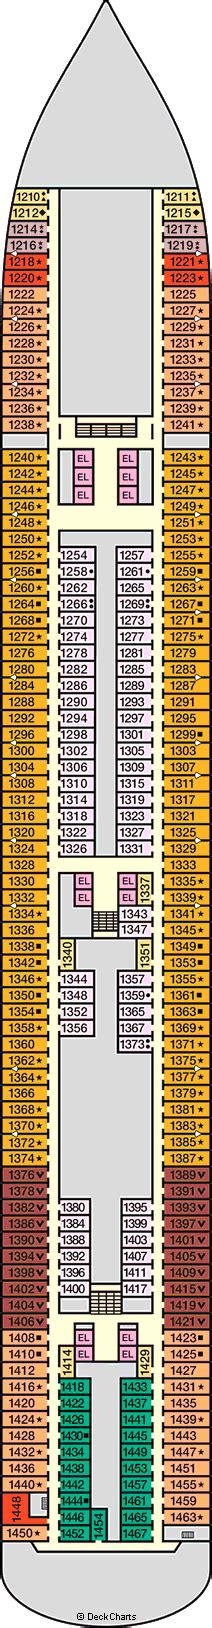 carnival breeze floor plan carnival breeze cruise ship deck plans on cruise critic